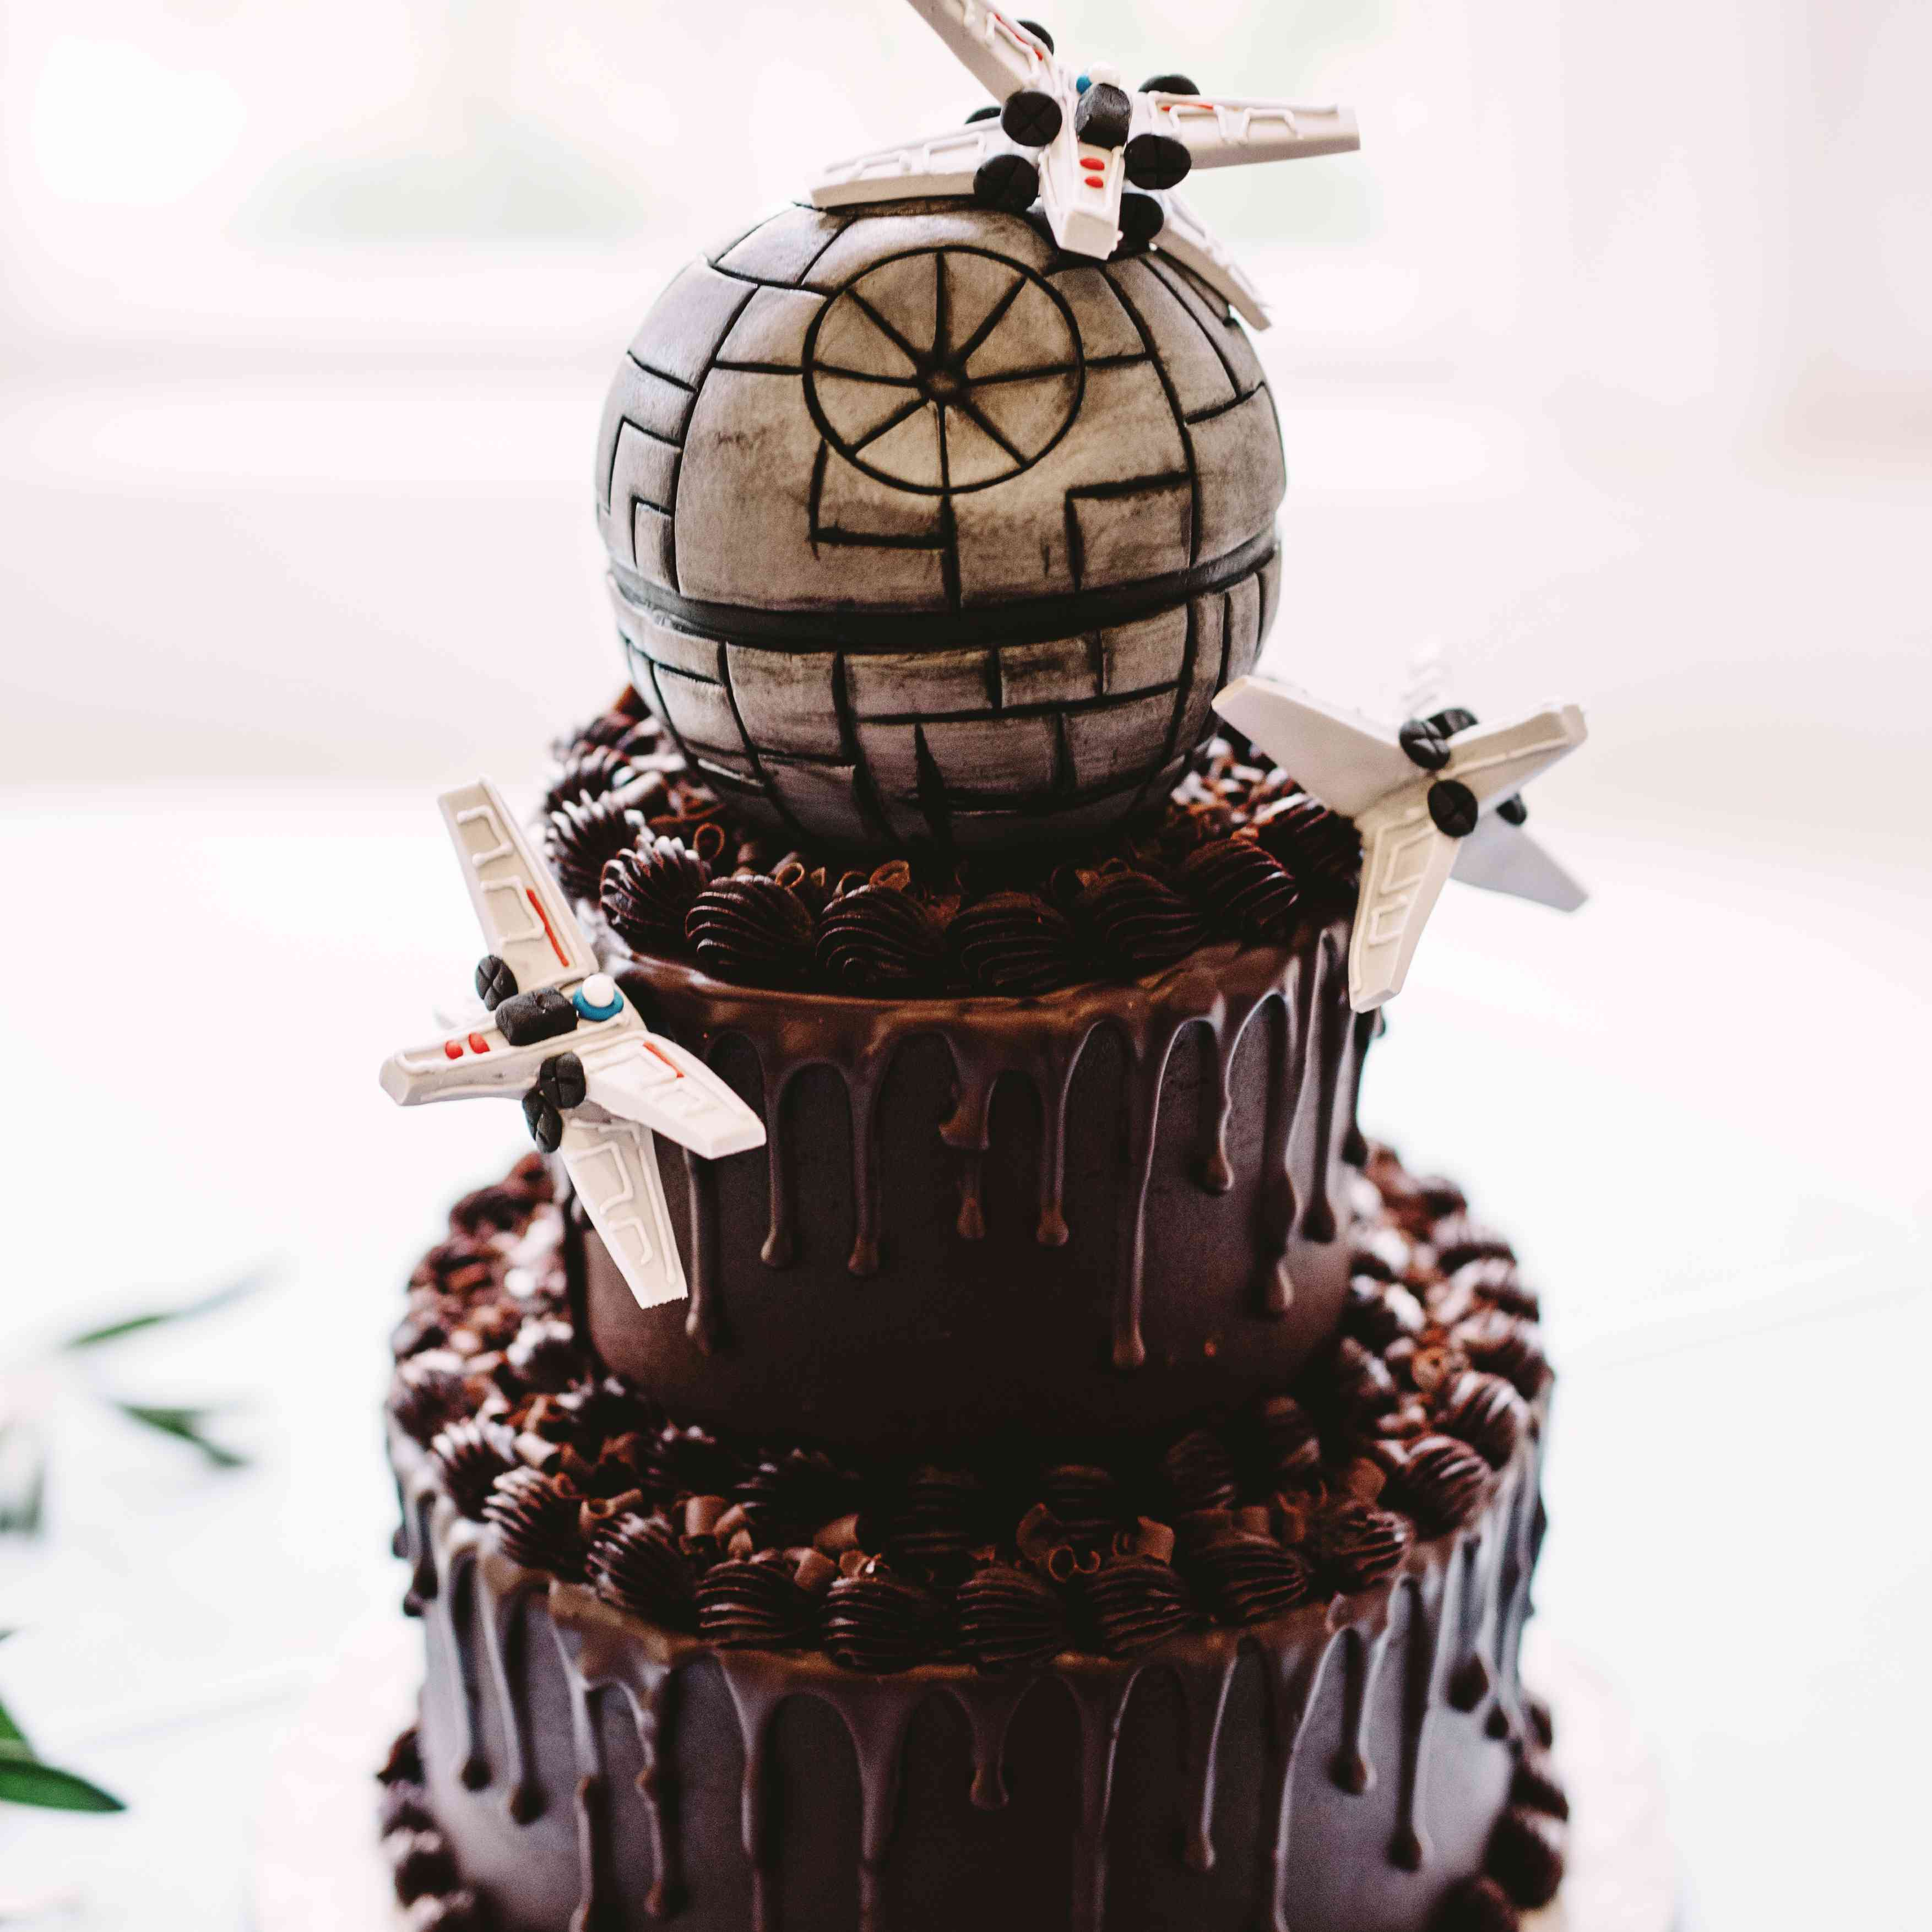 chocolate cake with airplanes